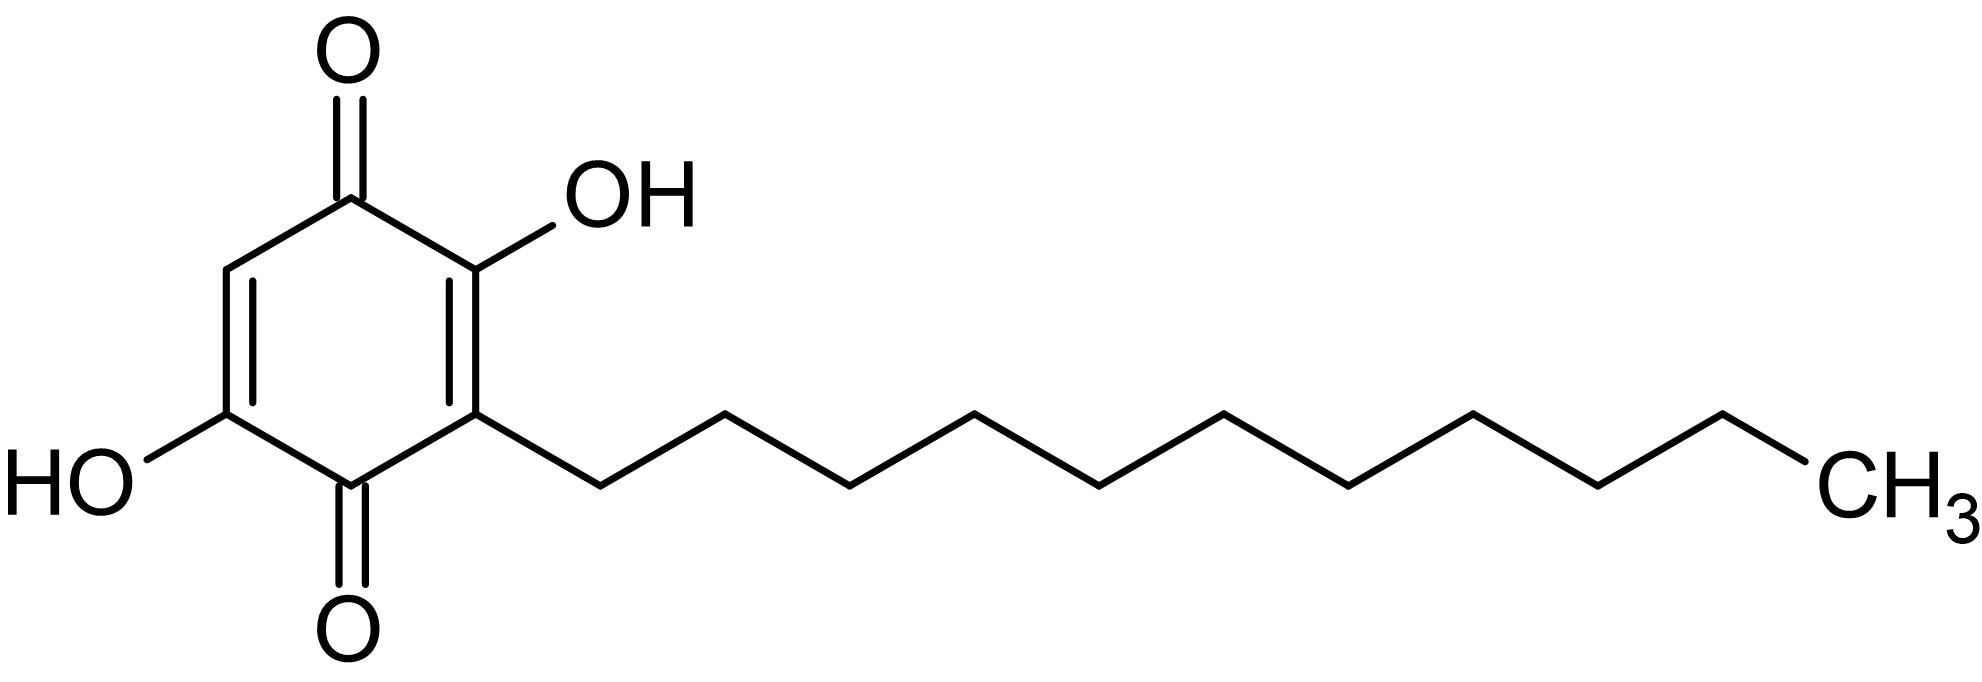 Chemical Structure - Embelin, cell-permeable inhibitor of X-linked inhibitor of apoptosis (ab141061)